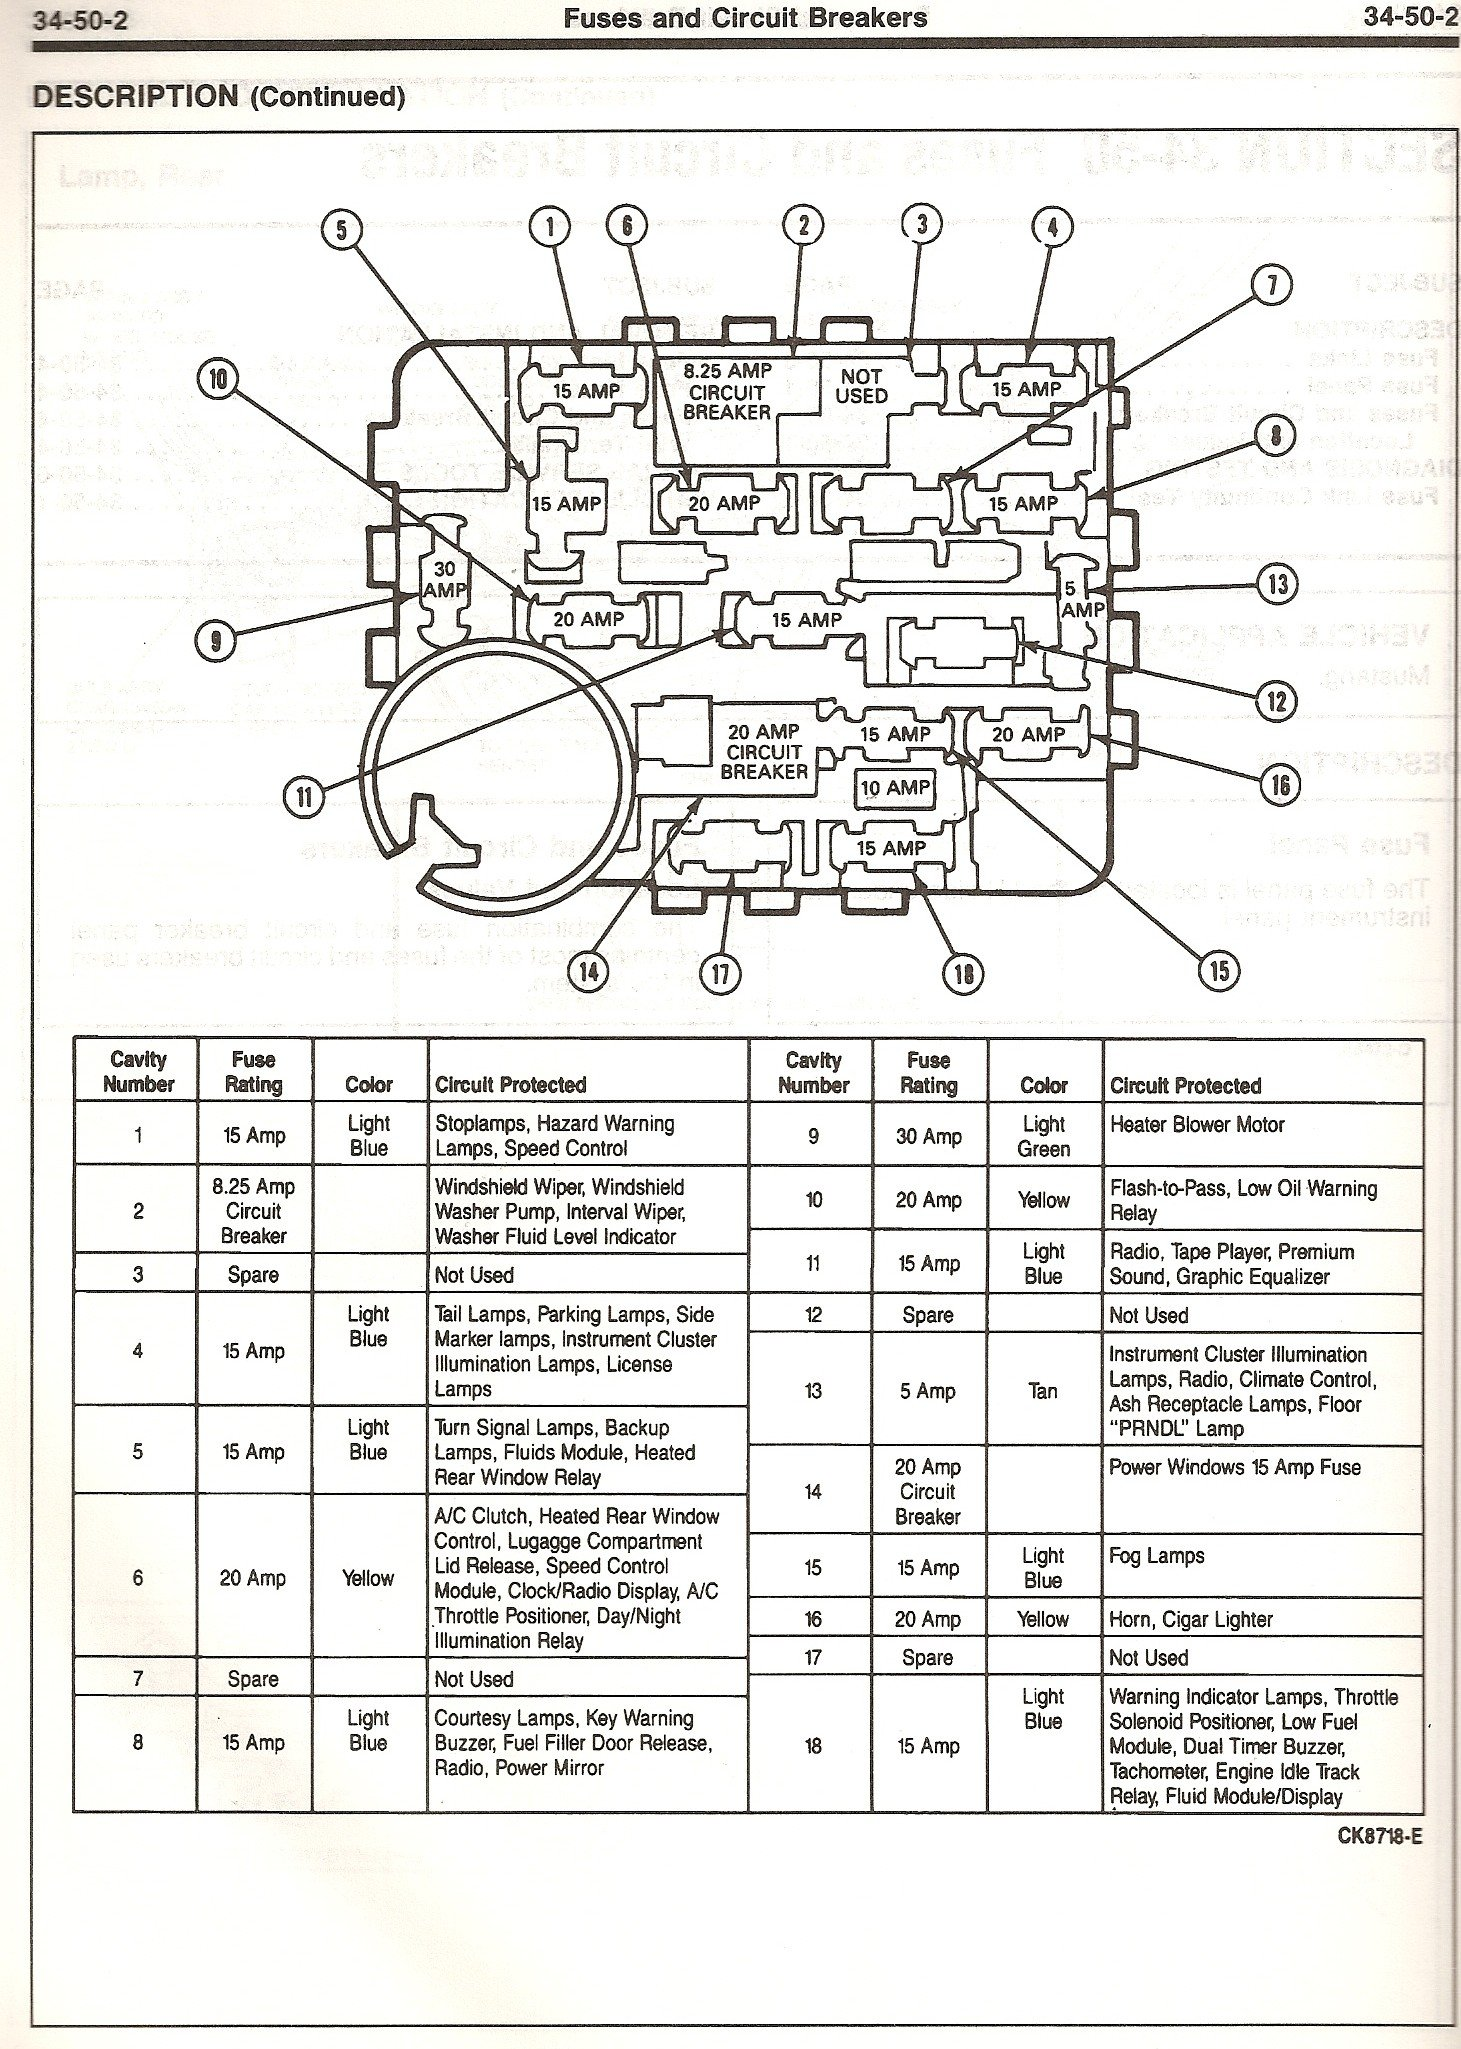 30633d1185070172 1990 2 3 mustang missing fuse panel diagram scan7 1990 2 3 mustang missing fuse panel diagram ford mustang forum fuse box guide at n-0.co